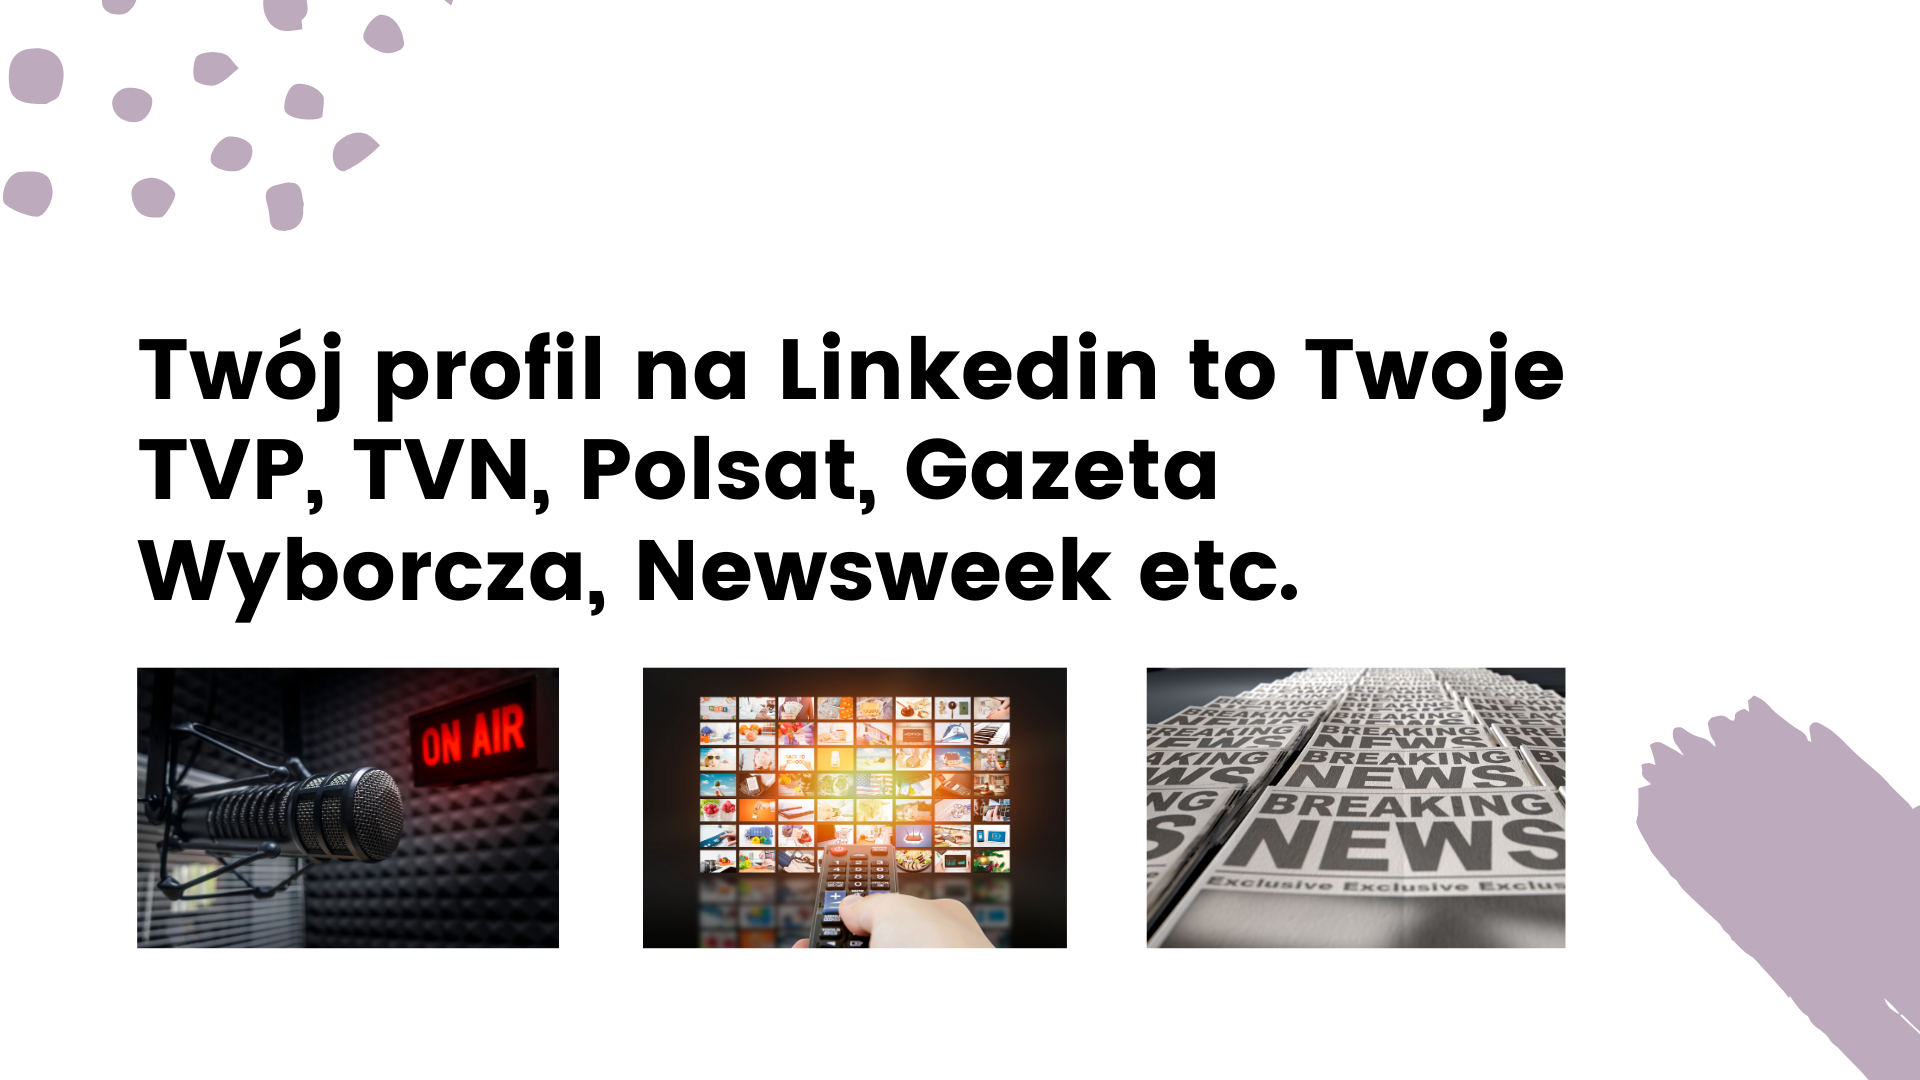 Twój profil na LInkedin to Twoje media